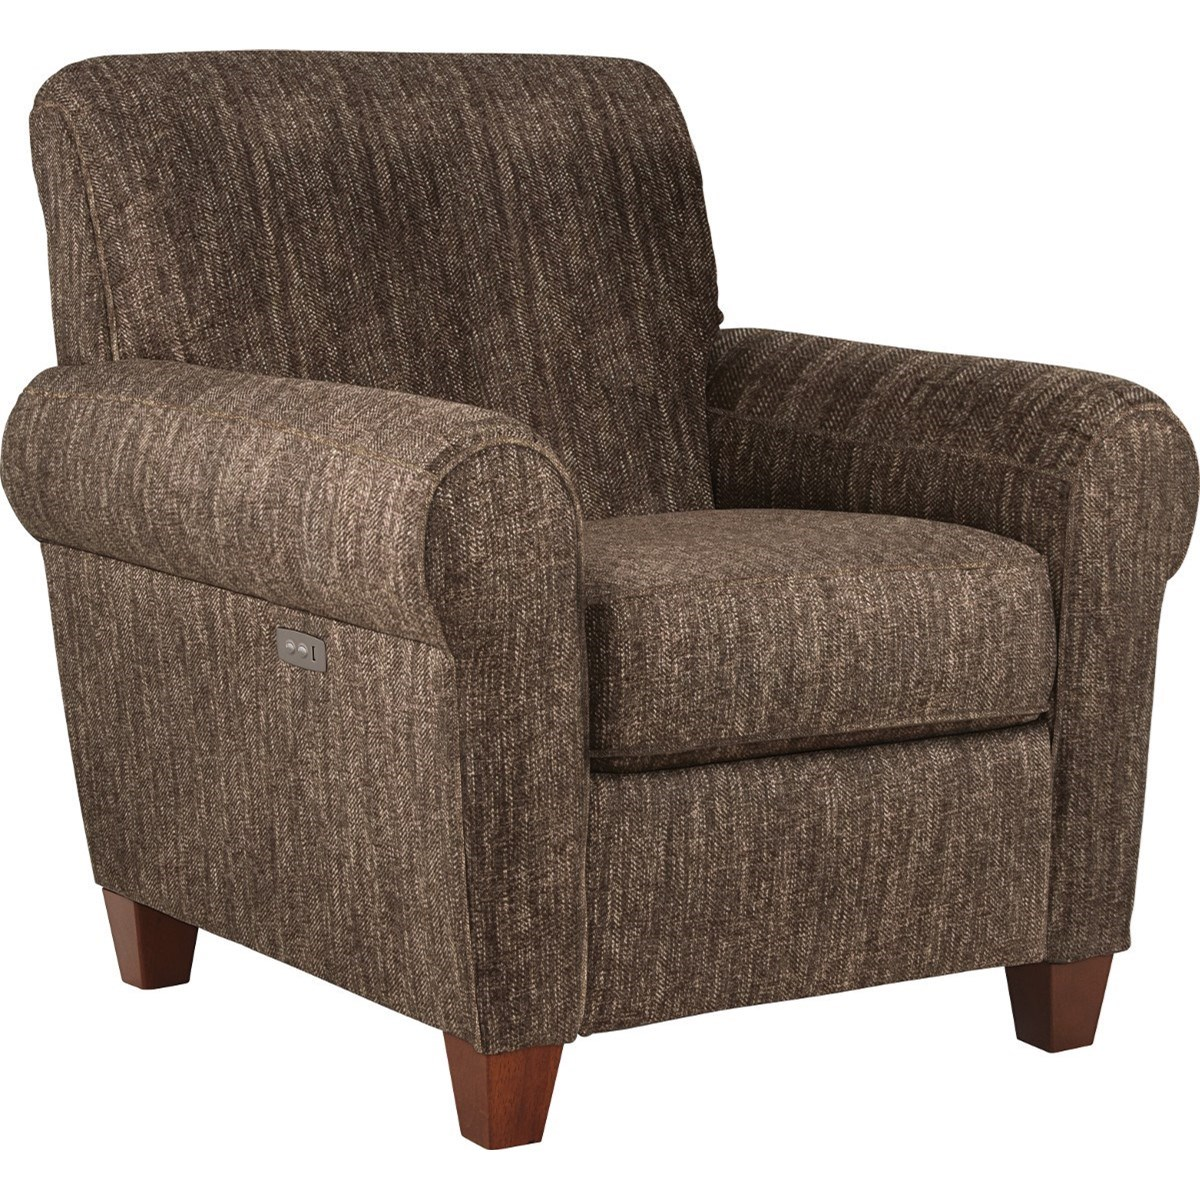 Bennett Duo™Reclining Chair by La-Z-Boy at Sparks HomeStore